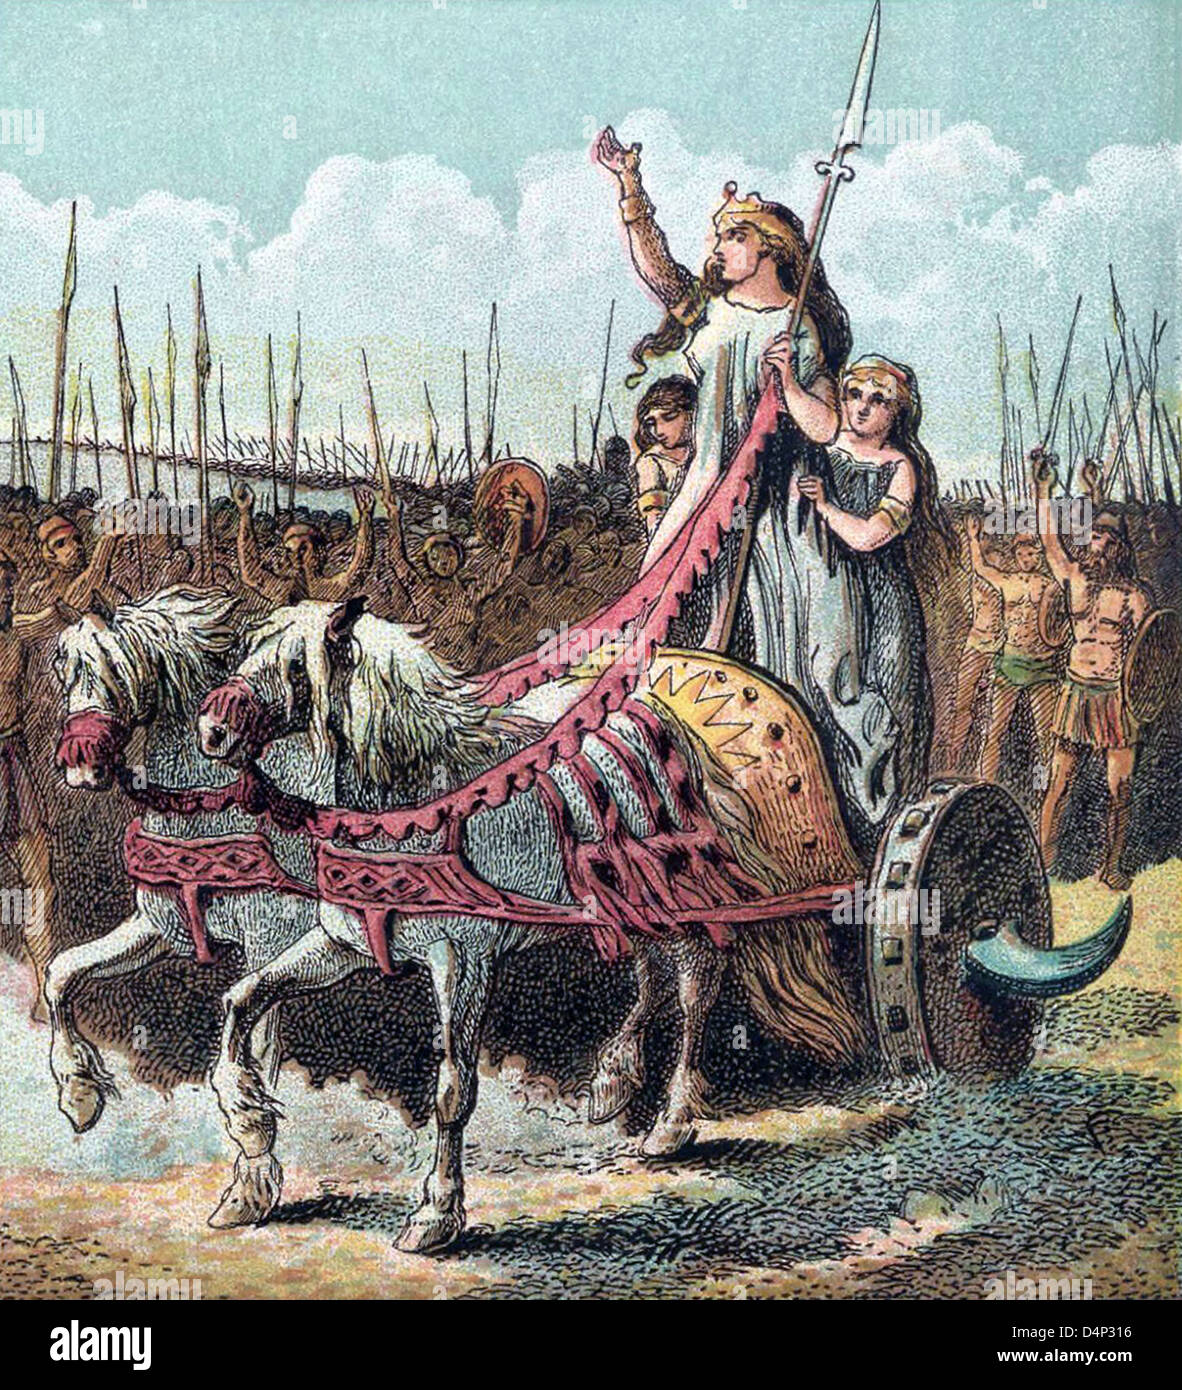 boudiccas revolt against the romans history essay Essay about boudicca's revolt against roman rule in britain boudicca was and still is in the eyes of many a national hero boudicca is an extremely important part of english and roman history as she led the only revolt that actually threatened the roman rule in britain.